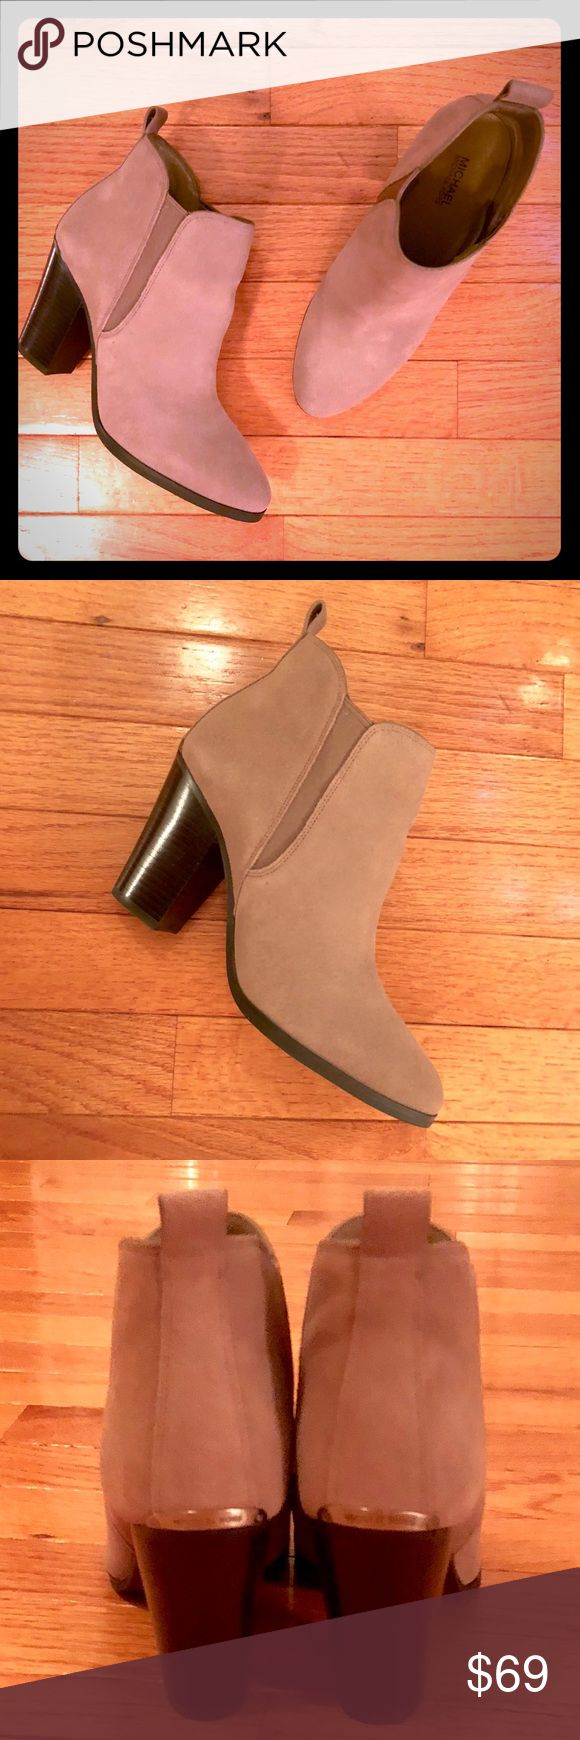 """Michael Kors """"Brandy"""" Booties - Size 7.5 - New! Brand new - with box - Michael Kors """"Brandy"""" Booties. Color is 'Dune' - Size 7.5 - Medium width.  Never worn!  Perfect for fall! Very versatile - wear with skinny jeans, leggings, or skirt and tights. Perfect condition - never worn. Smoke-free home. MICHAEL Michael Kors Shoes Ankle Boots & Booties"""